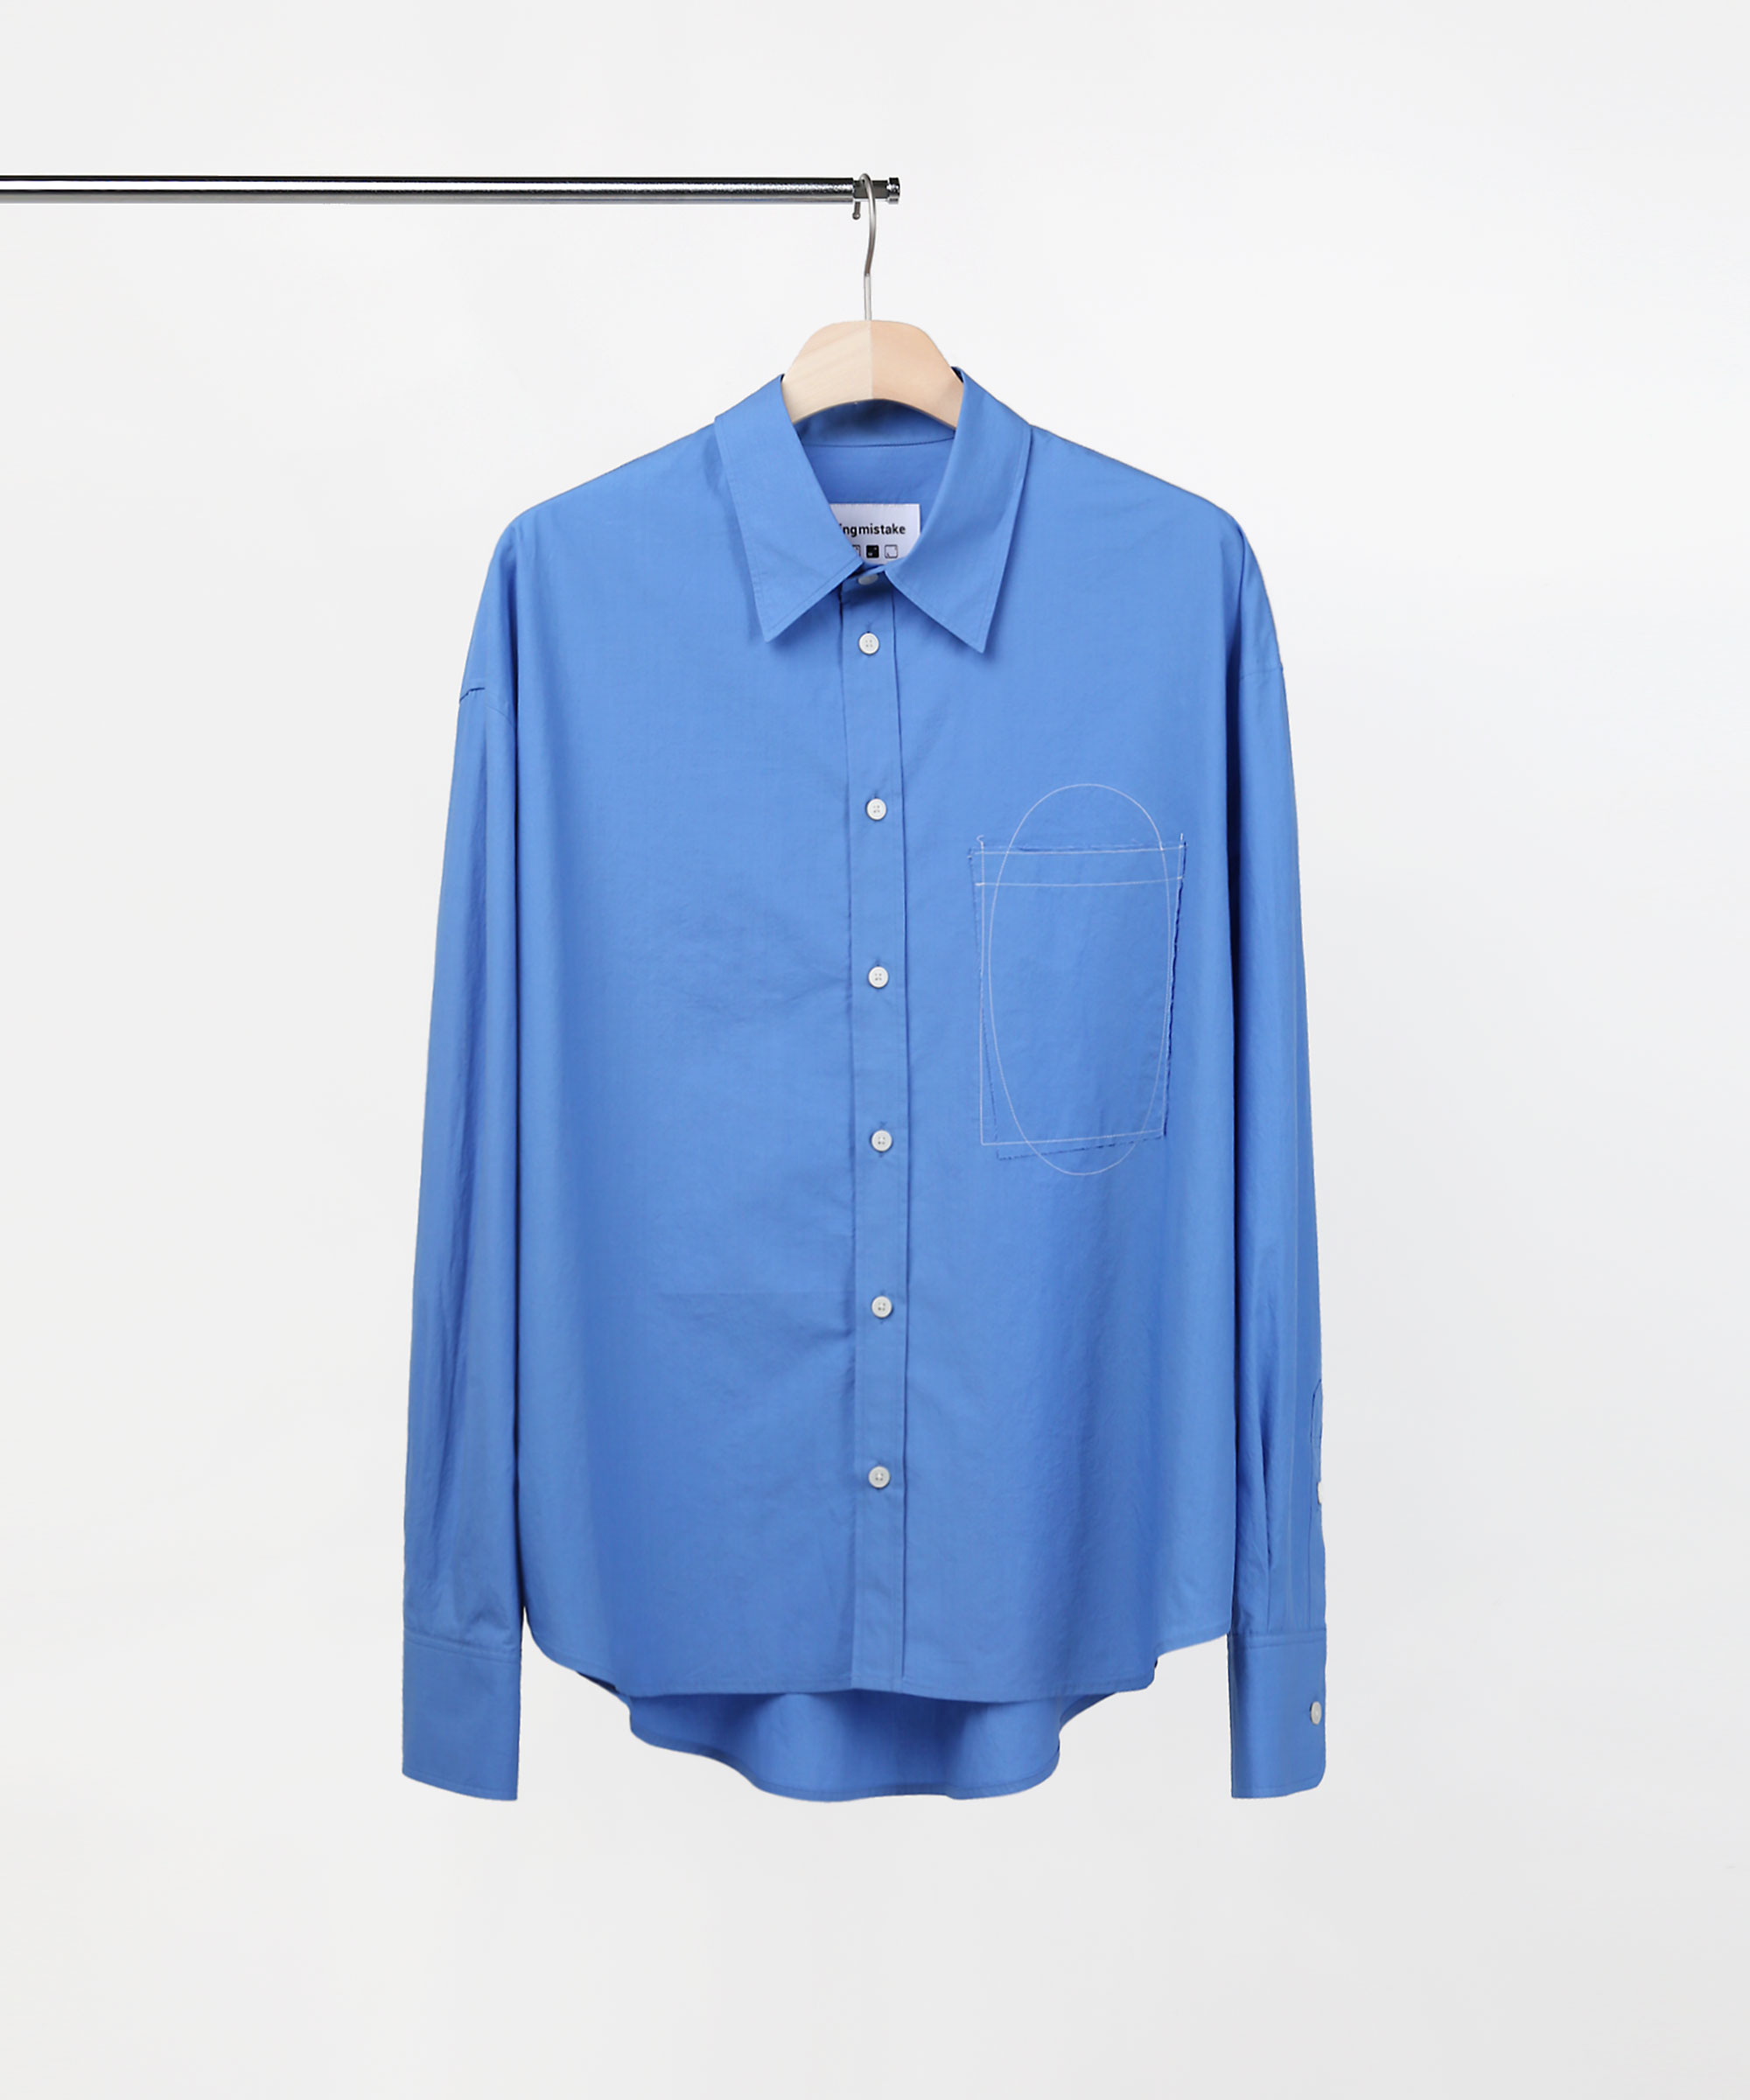 STITCH STANDARD SHIRTS BLUE